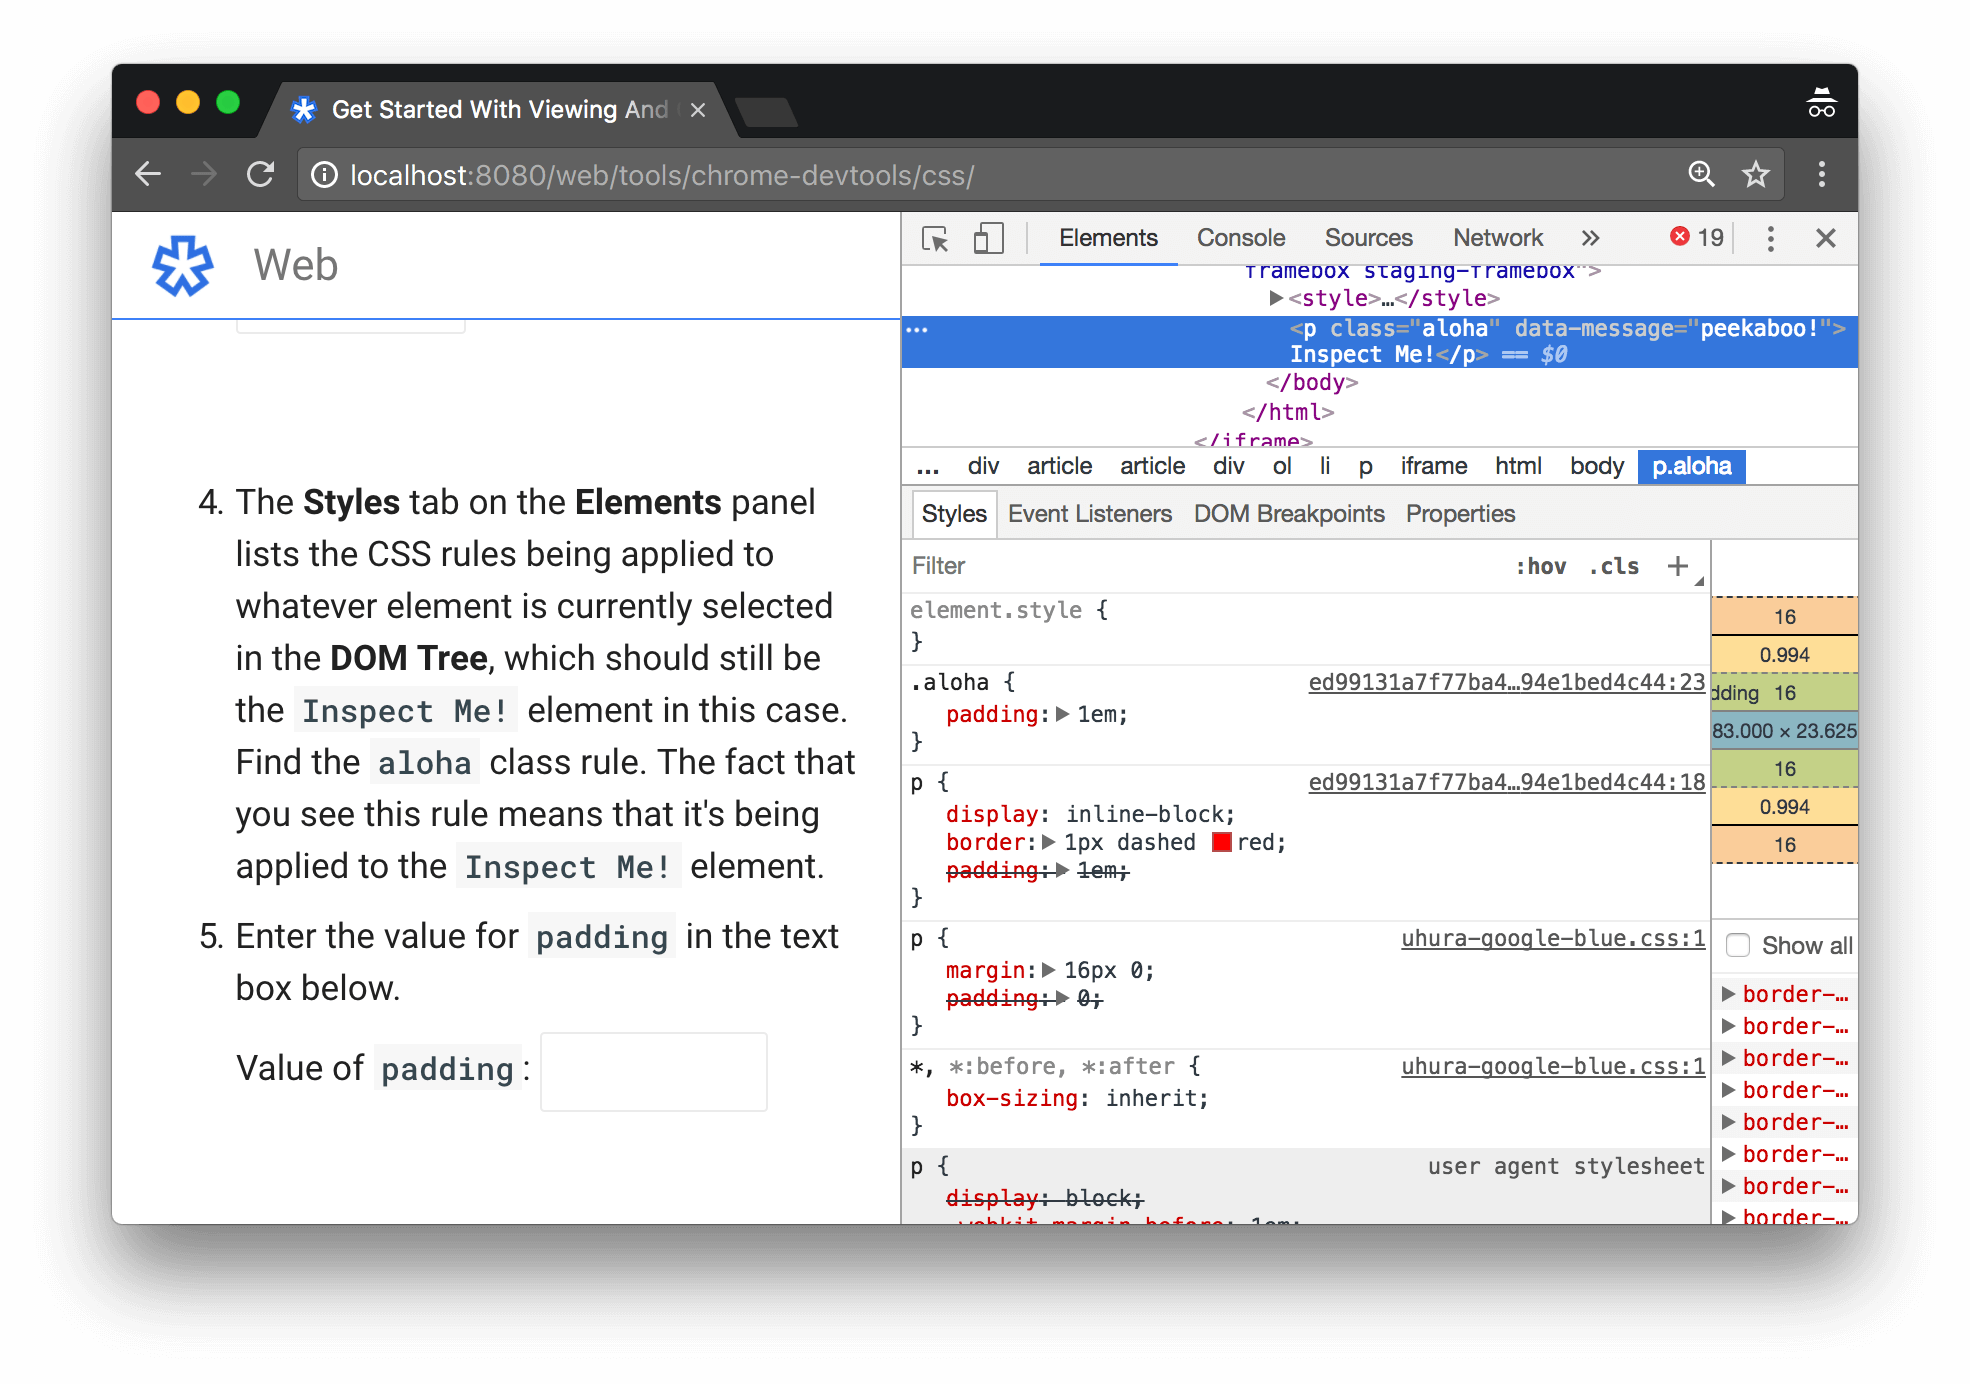 CSS classes being applied to the inspected element are highlighted in the Styles tab